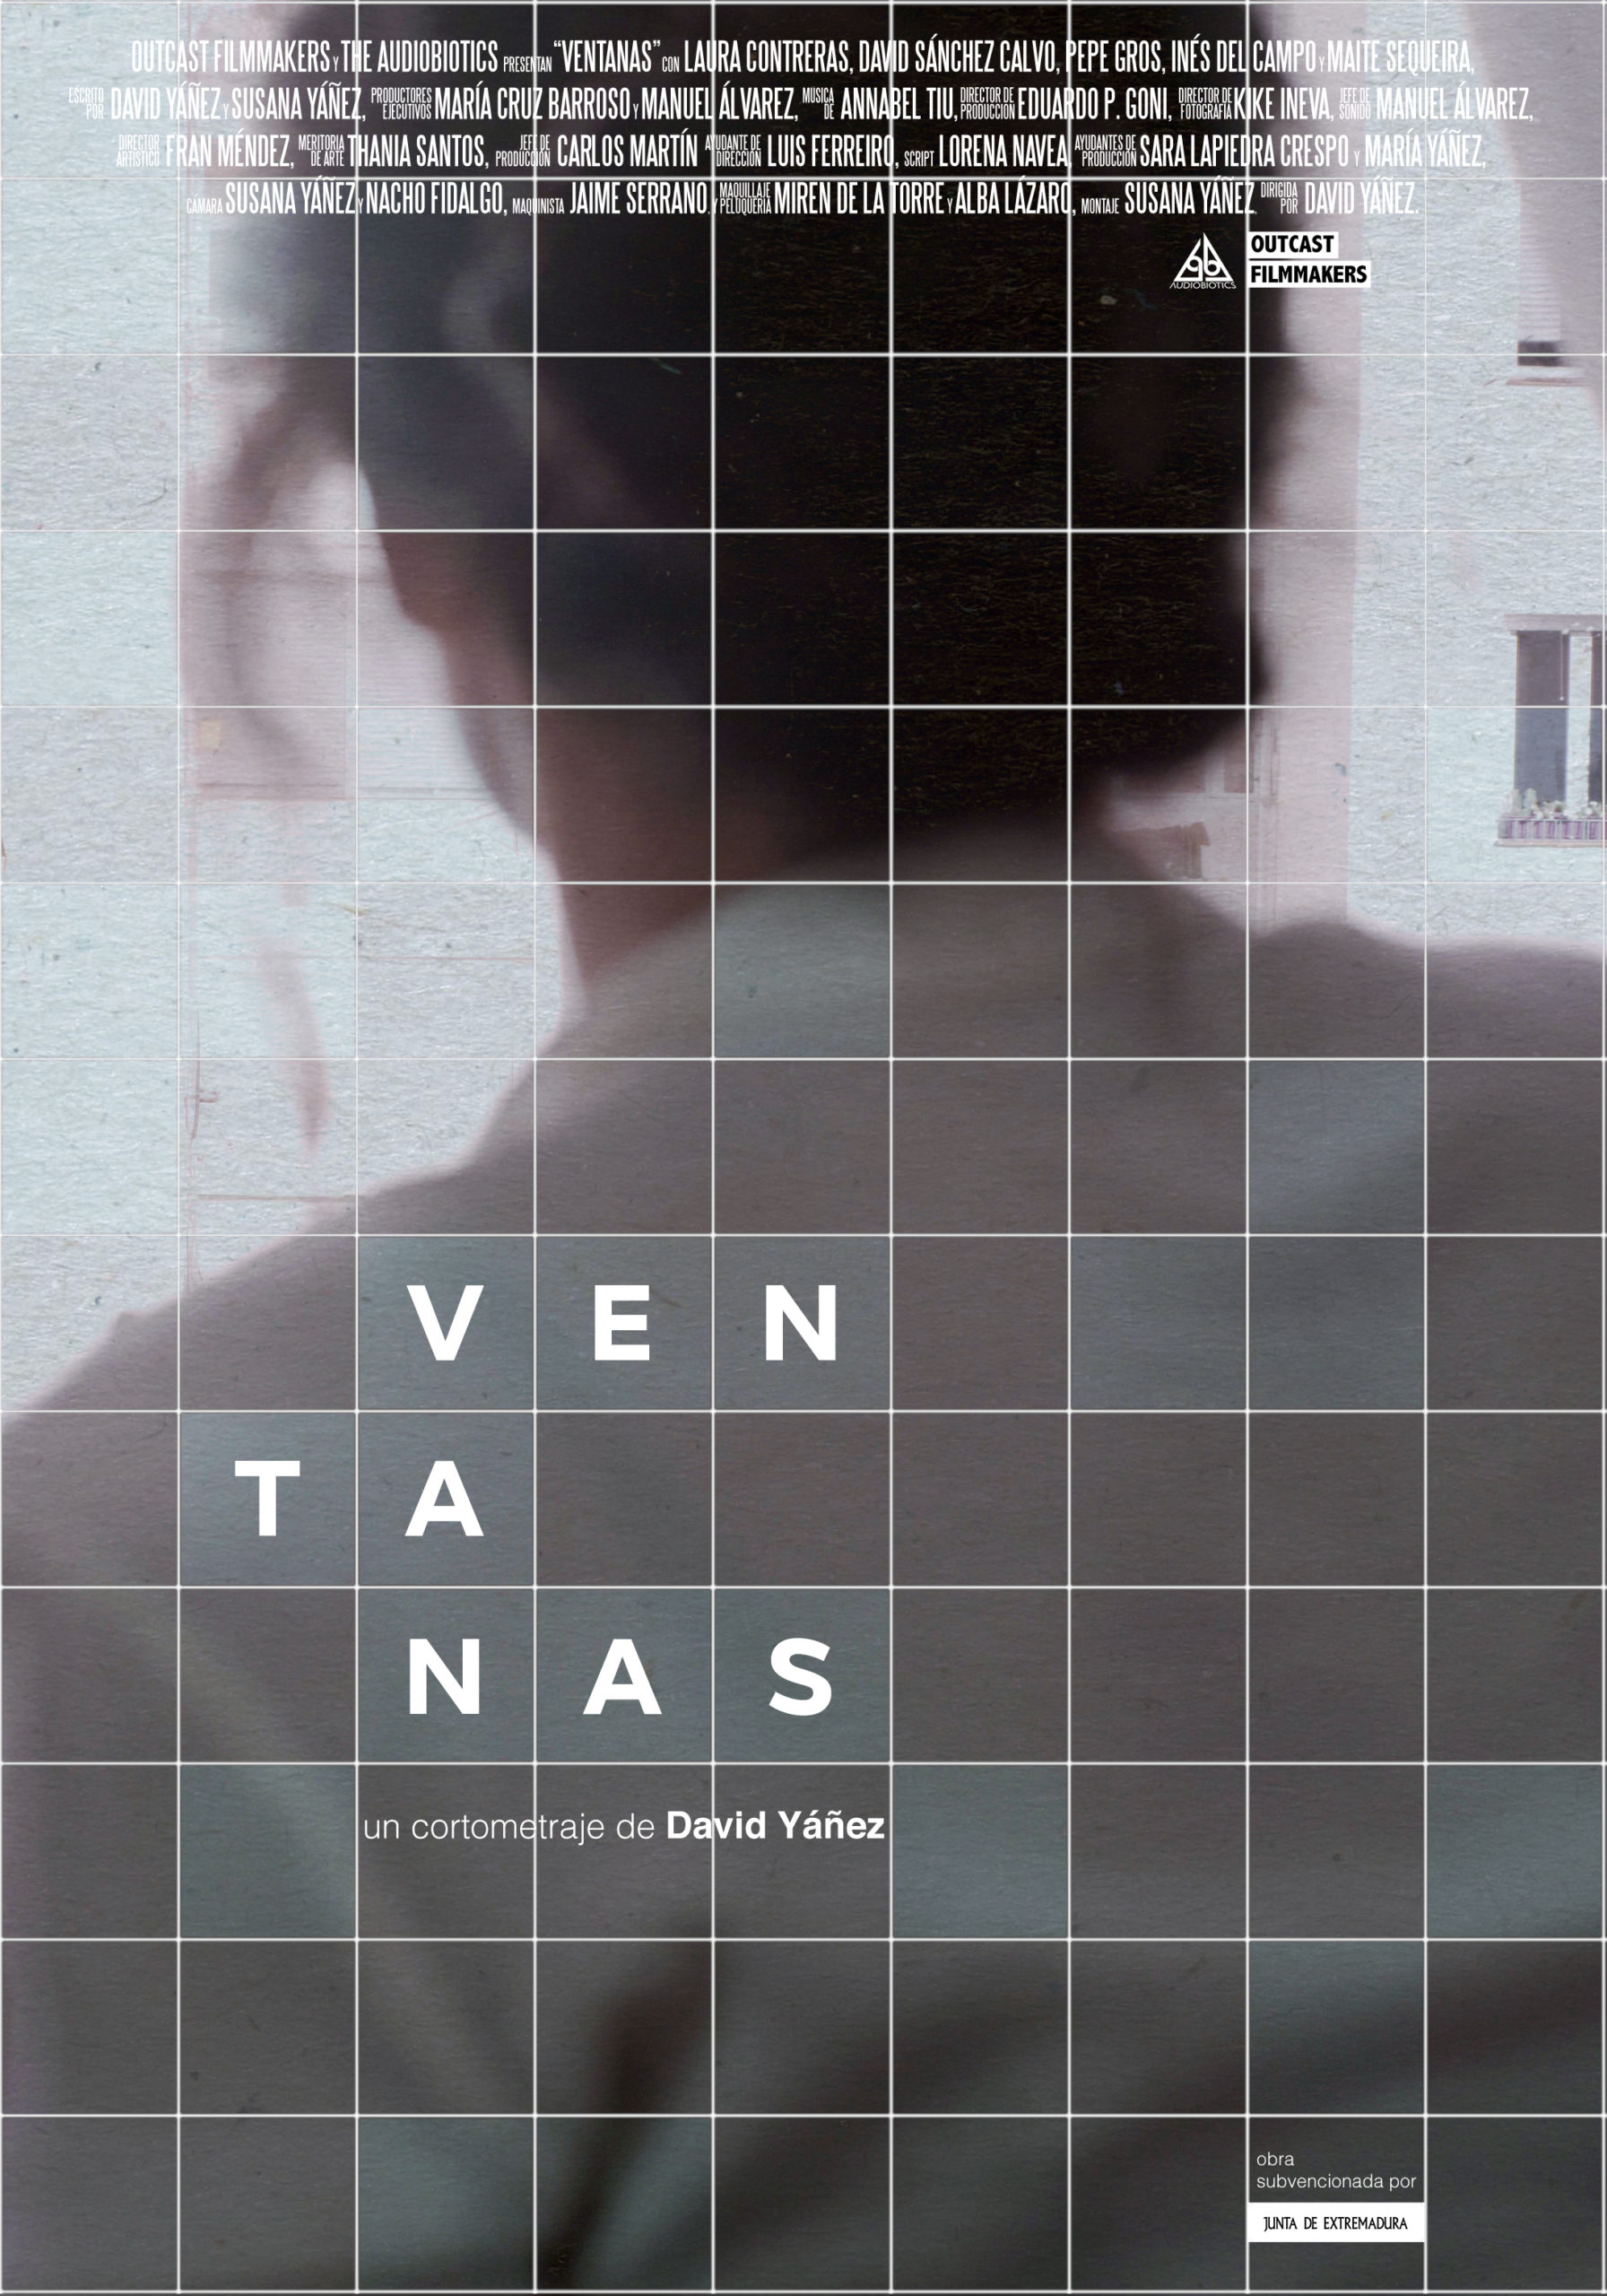 POSTER_VENTANAS (WINDOWS)_format 100x70